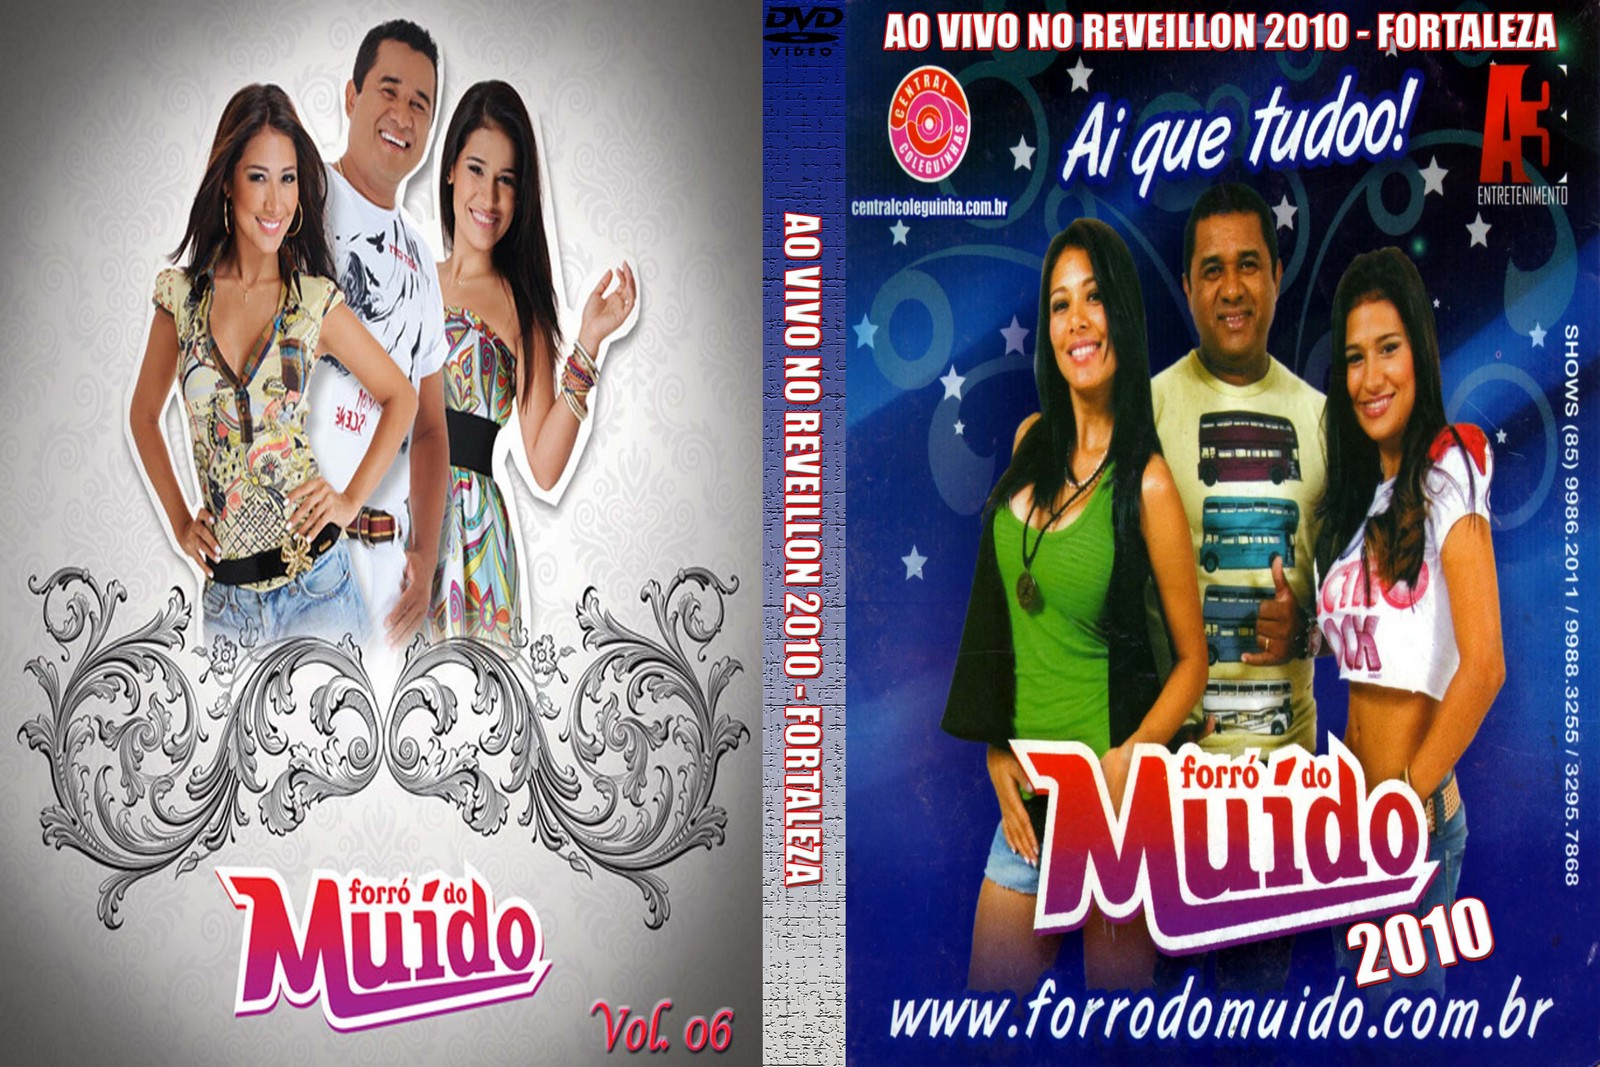 dvd forro do muido 2010 gratis